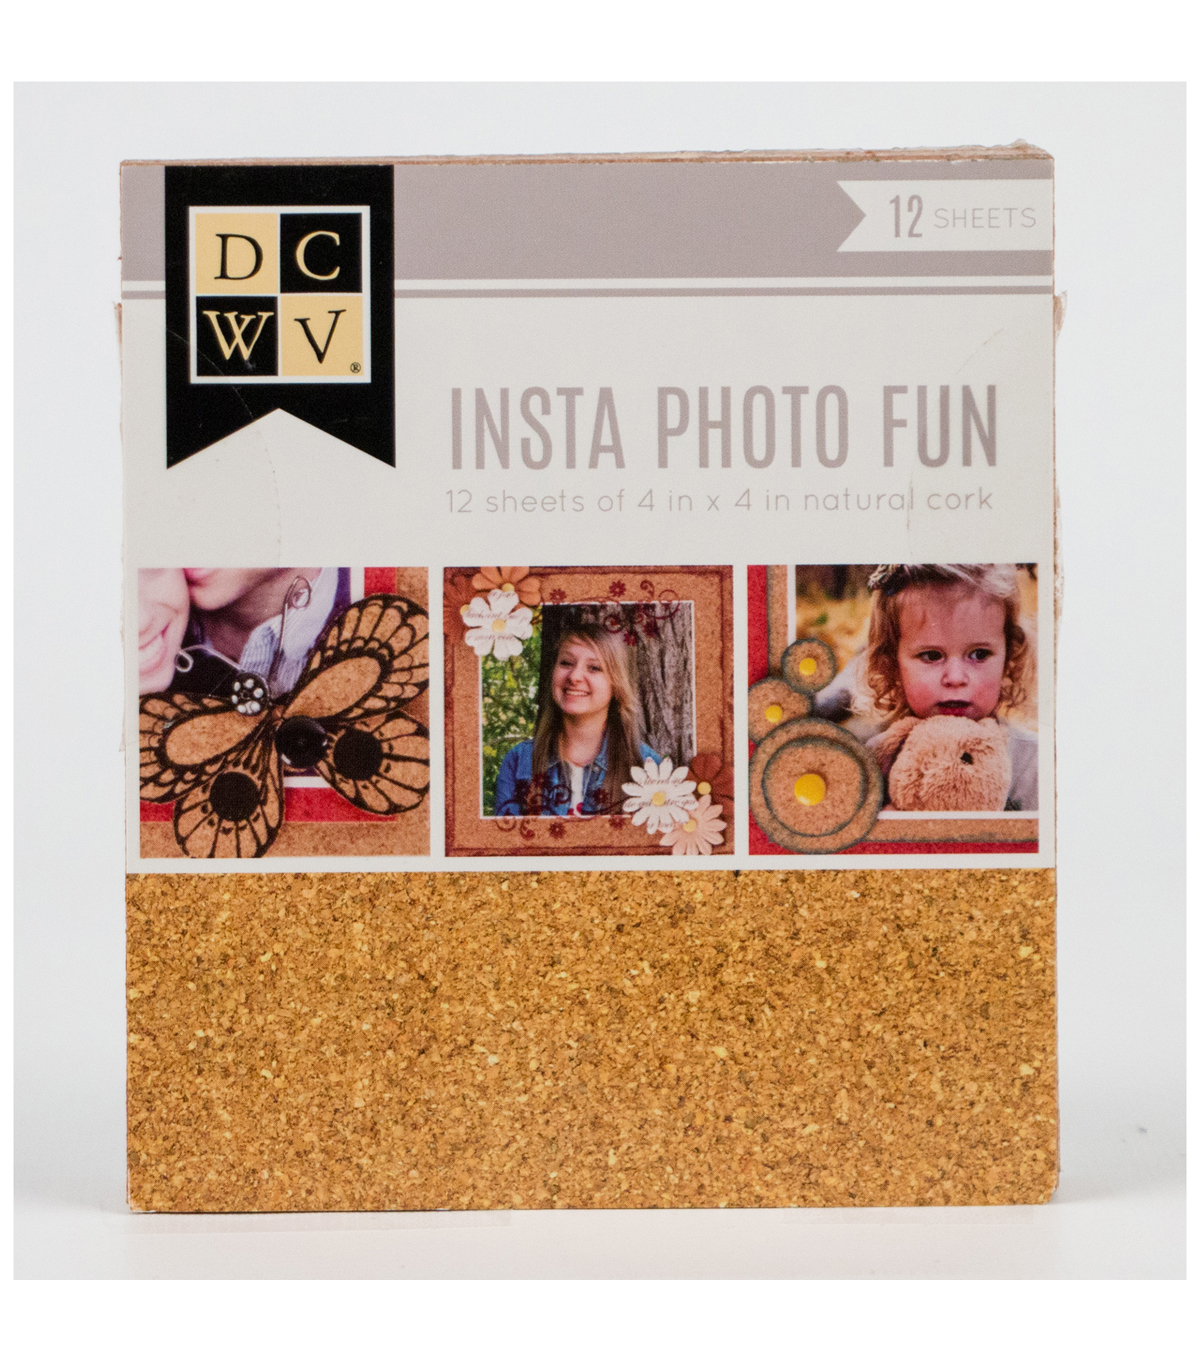 DCWV Insta Photo Fun 4\u0022x4\u0022 Cork Stack